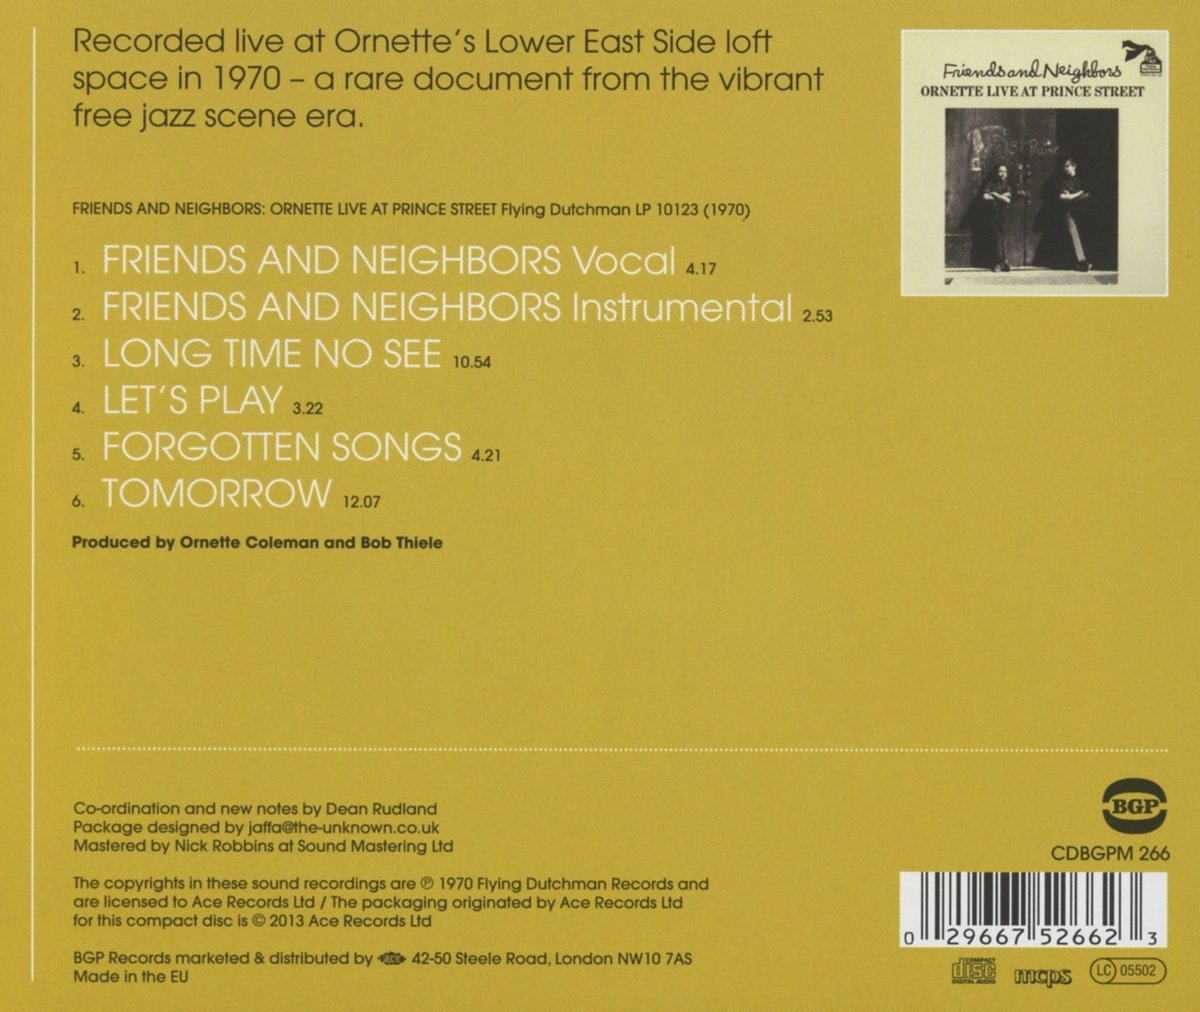 Friends And Neighbors: Ornette Live At Prince Street by BGP (Beat Goes Public)